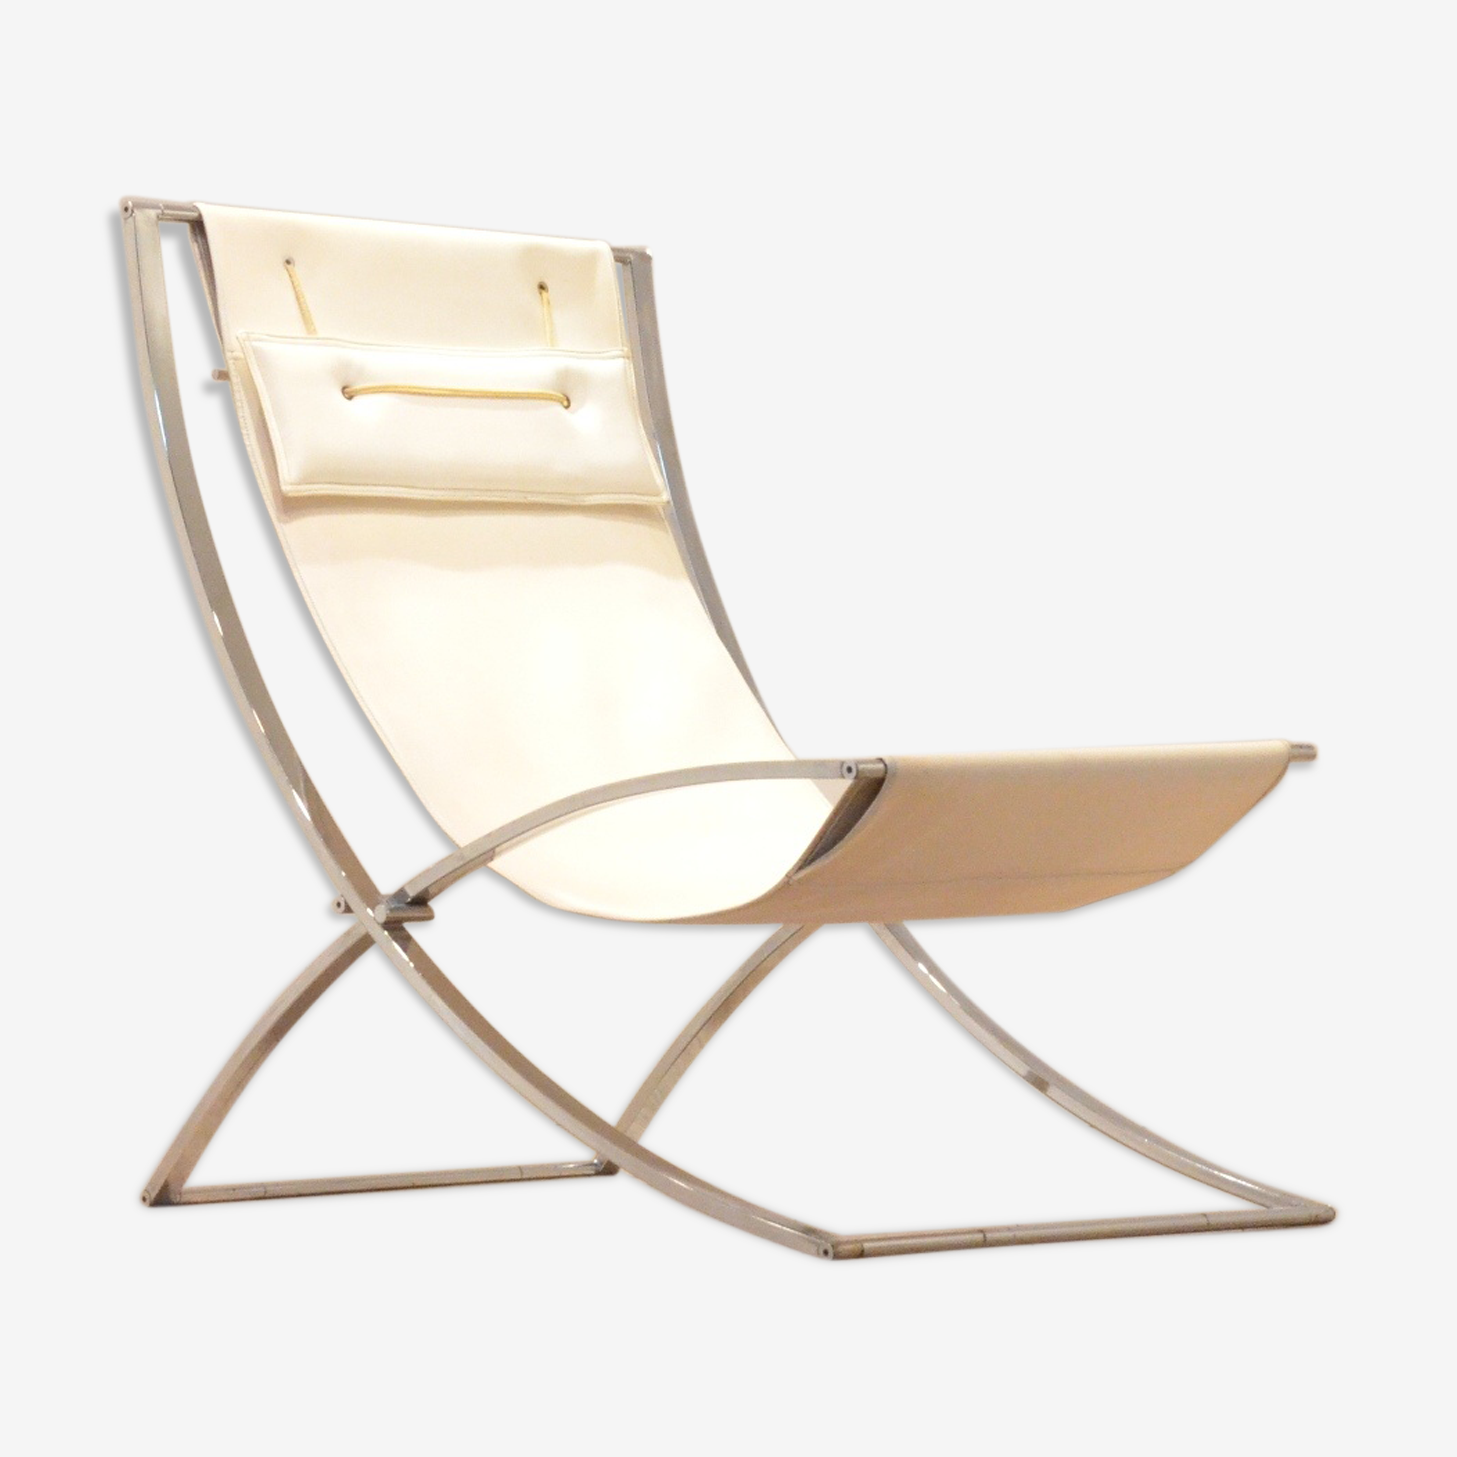 Luisa folding armchair by Marcello Cuneo